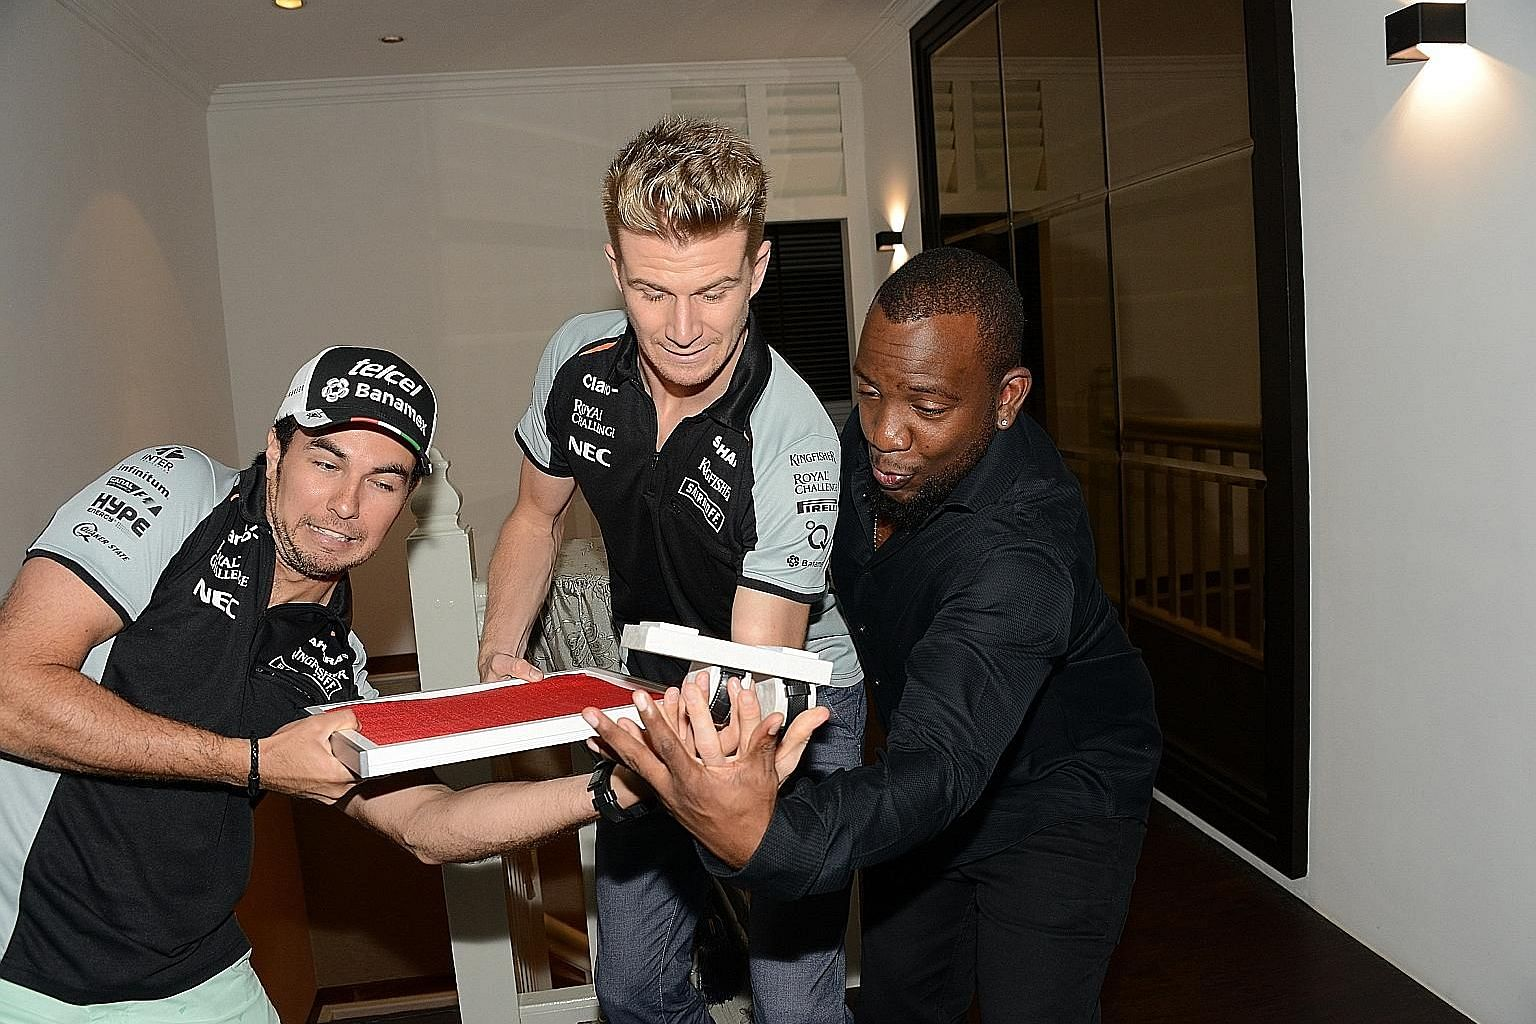 Force India drivers Sergio Perez (left) and Nico Hulkenberg (centre) fumbling with the Felio Siby watches in front of Dominique Siby, the founder of Felio Siby and a sponsor of the Force India team.